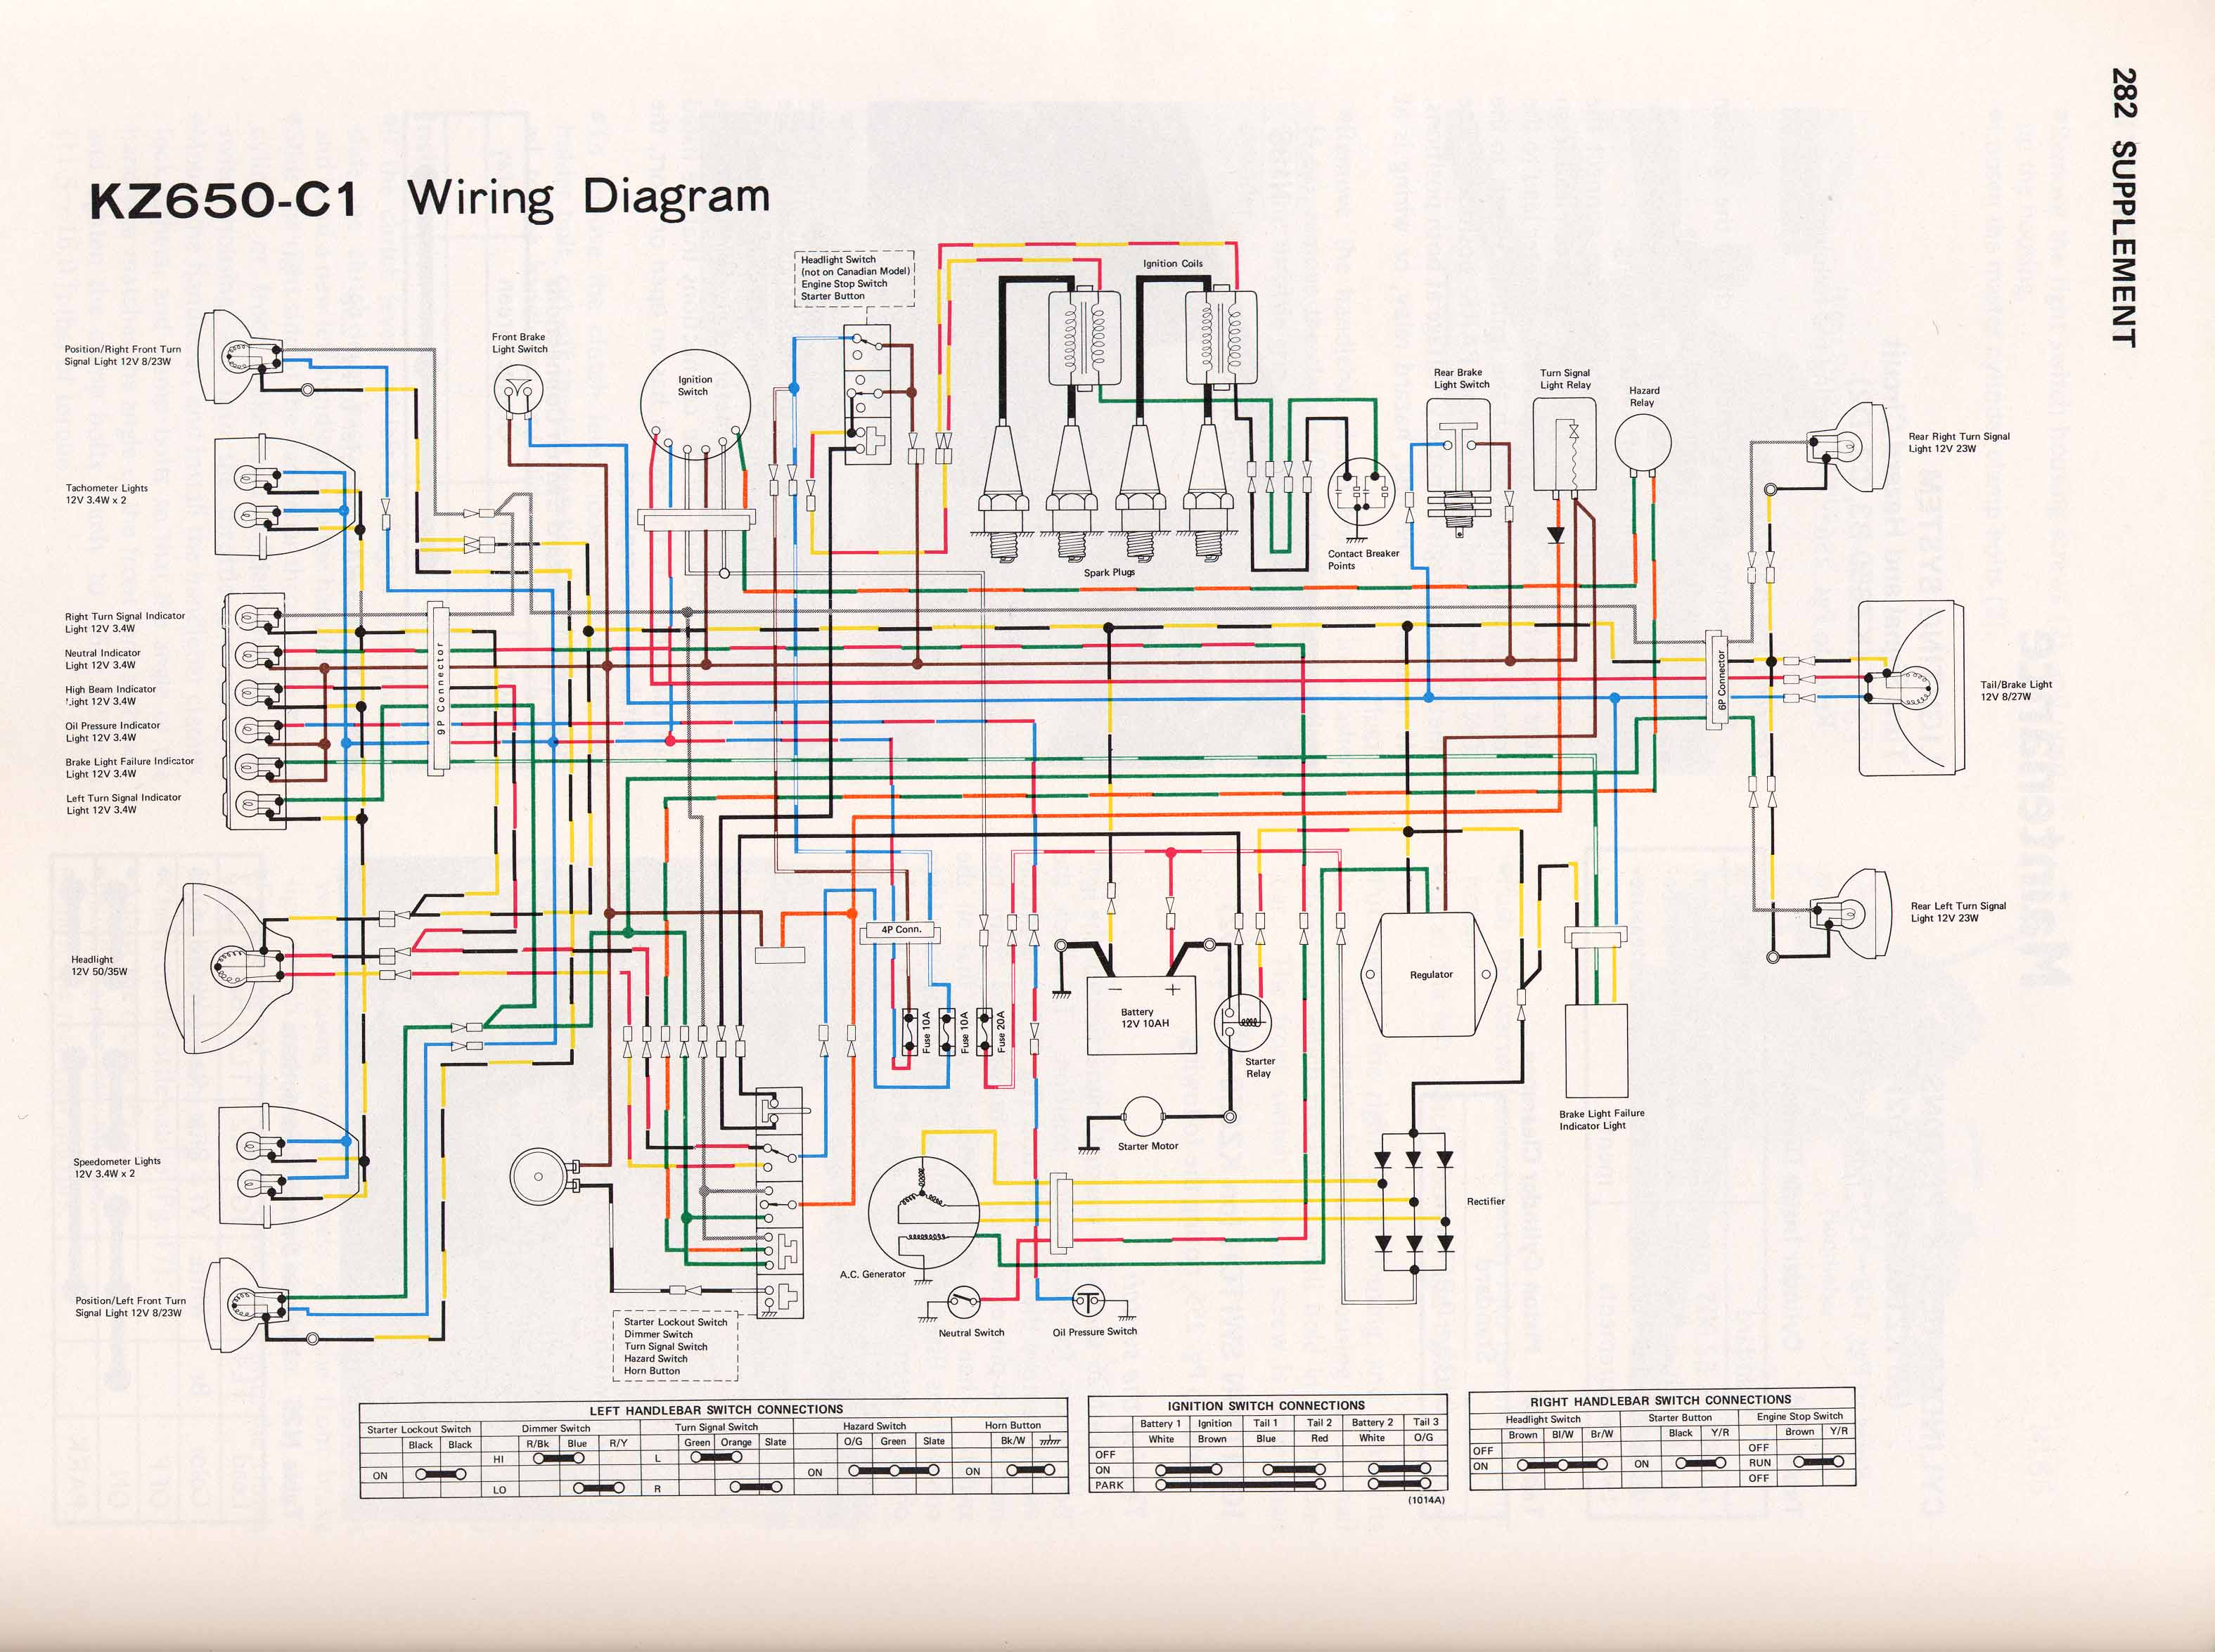 1979 Ford Ltd Wiring Diagram Reinvent Your 1973 Cougar 1978 Kawasaki Kz650 Will Be A Thing U2022 Rh Exploreandmore Co Uk 1948 1970